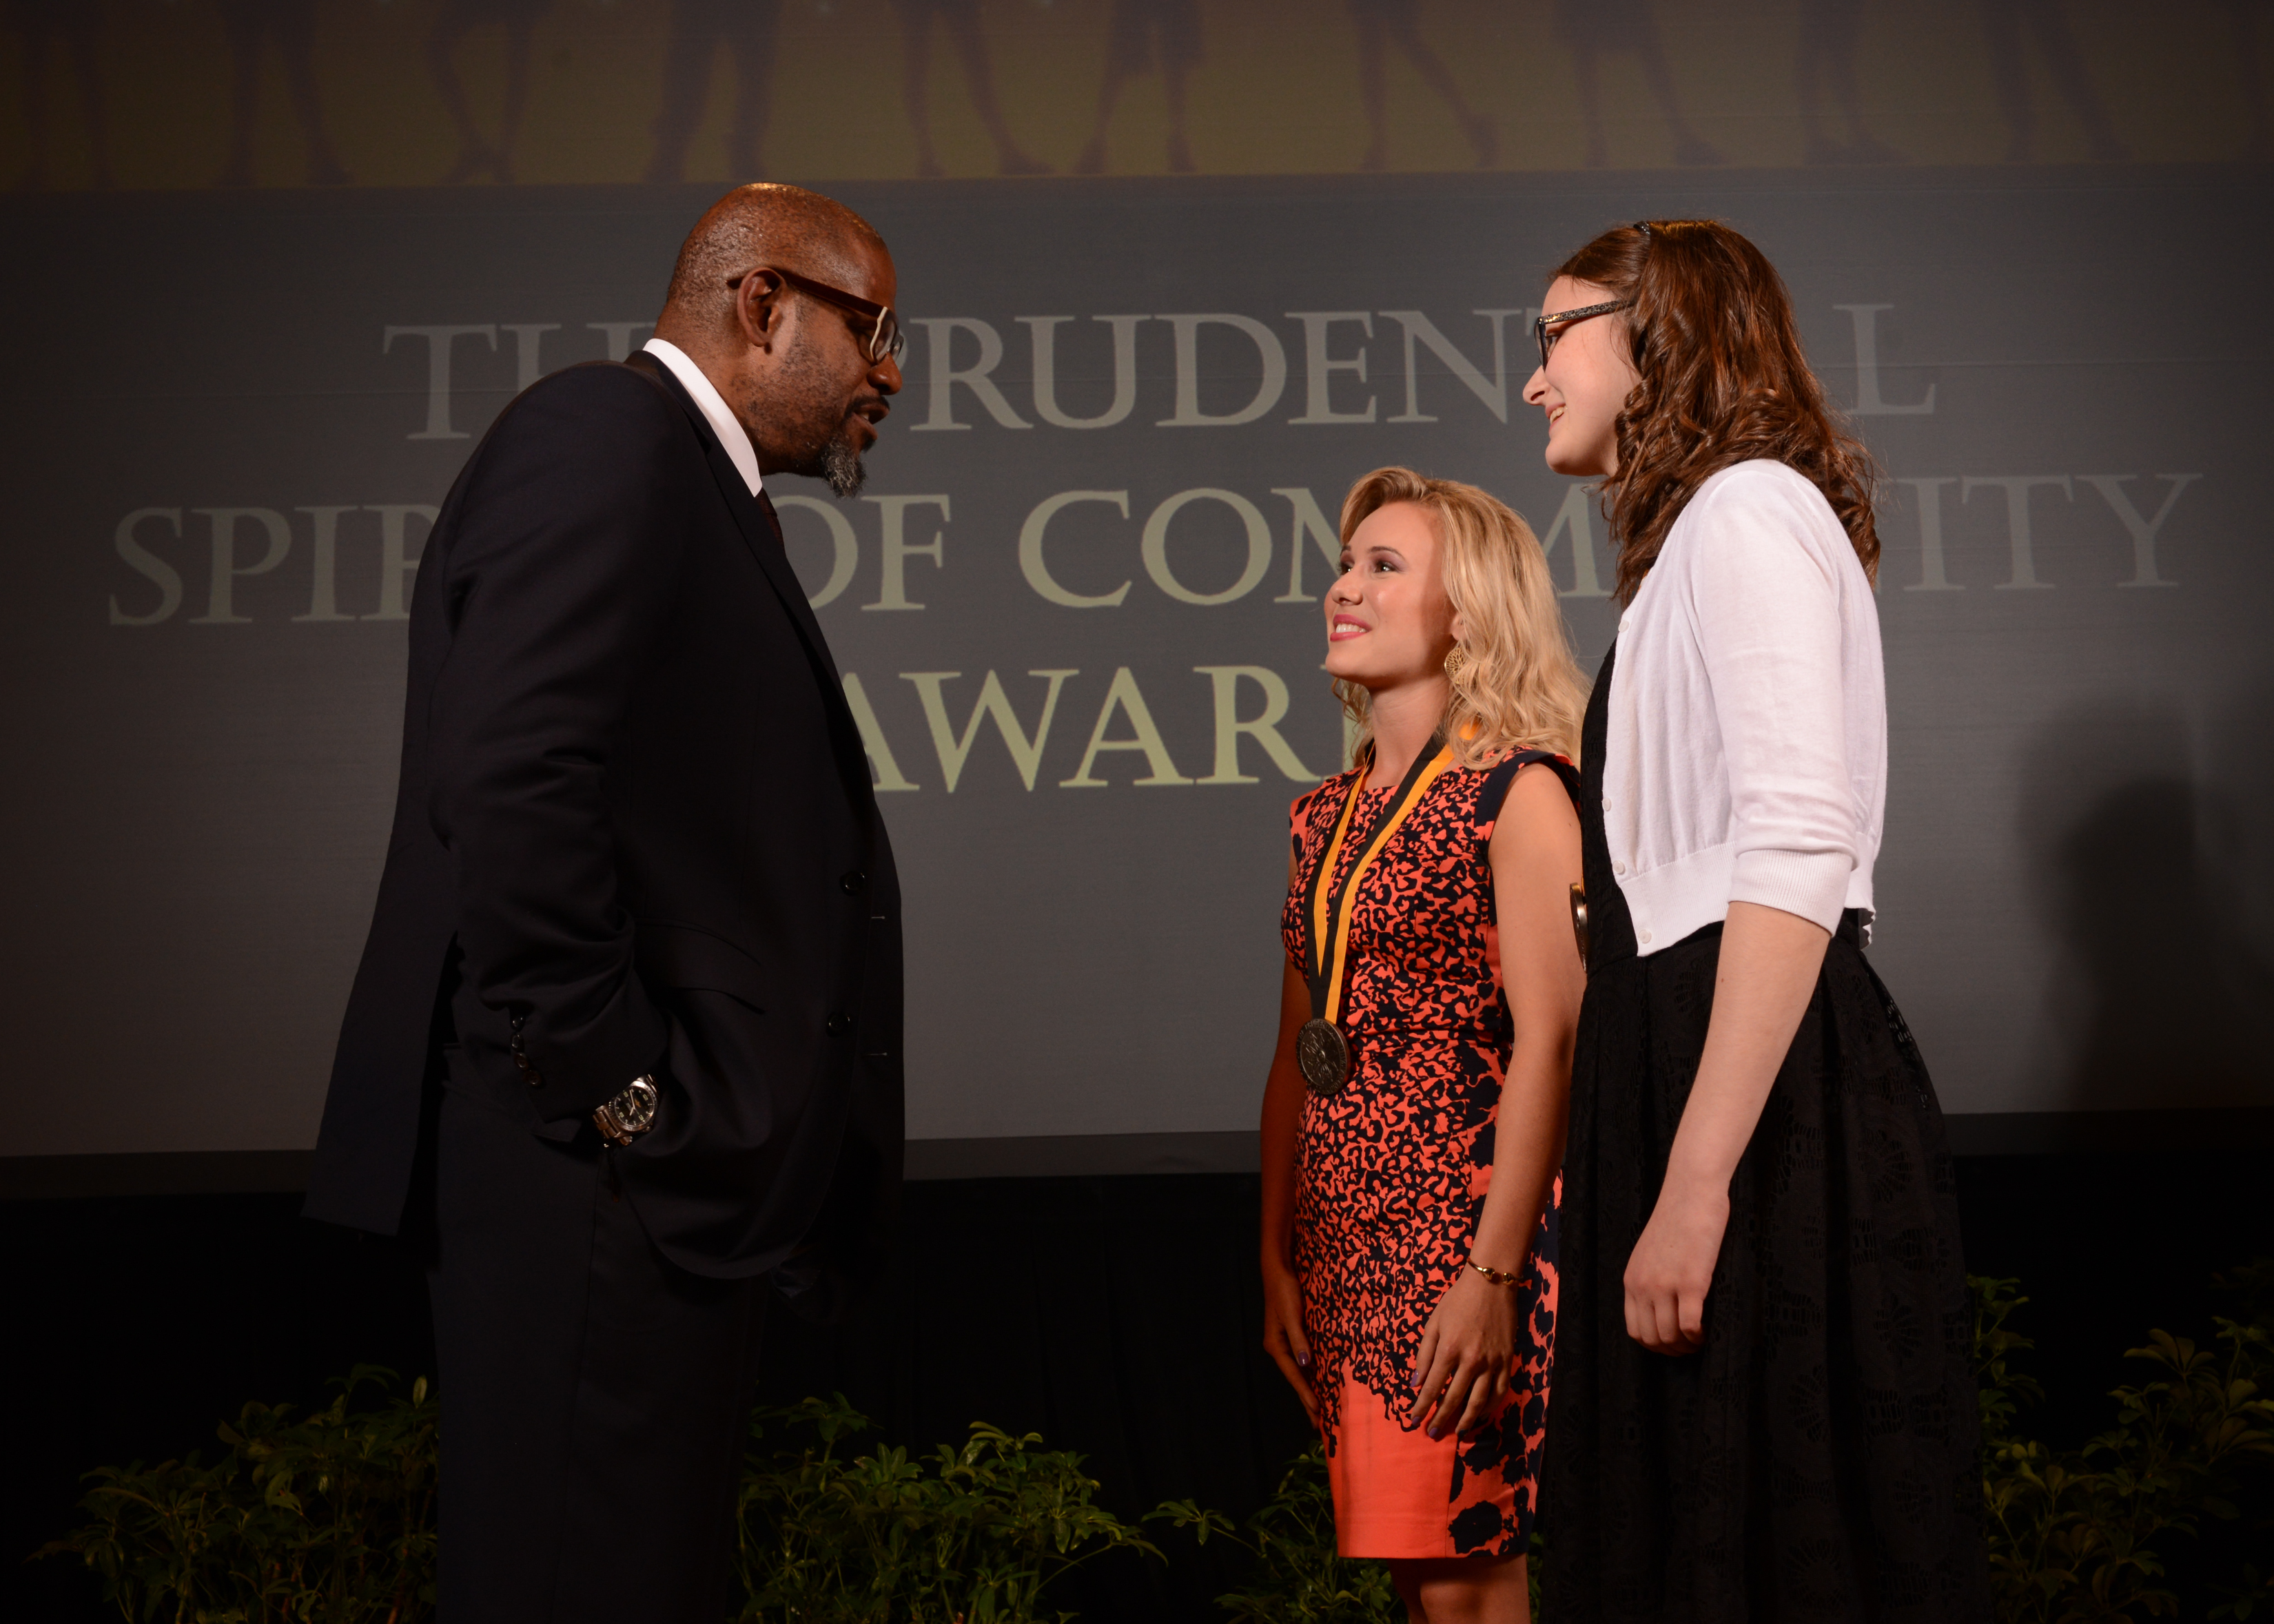 Academy Award-winning actor Forest Whitaker congratulates Ashten Vincent, 17, of Edmond (center) and Katherine Prior, 13, of Oklahoma City (right) on being named Oklahoma's top two youth volunteers for 2014 by The Prudential Spirit of Community Awards. Ashten and Katherine were honored at a ceremony on Sunday, May 4 at the Smithsonian's National Museum of Natural History, where they each received a $1,000 award. (Photo: Business Wire)